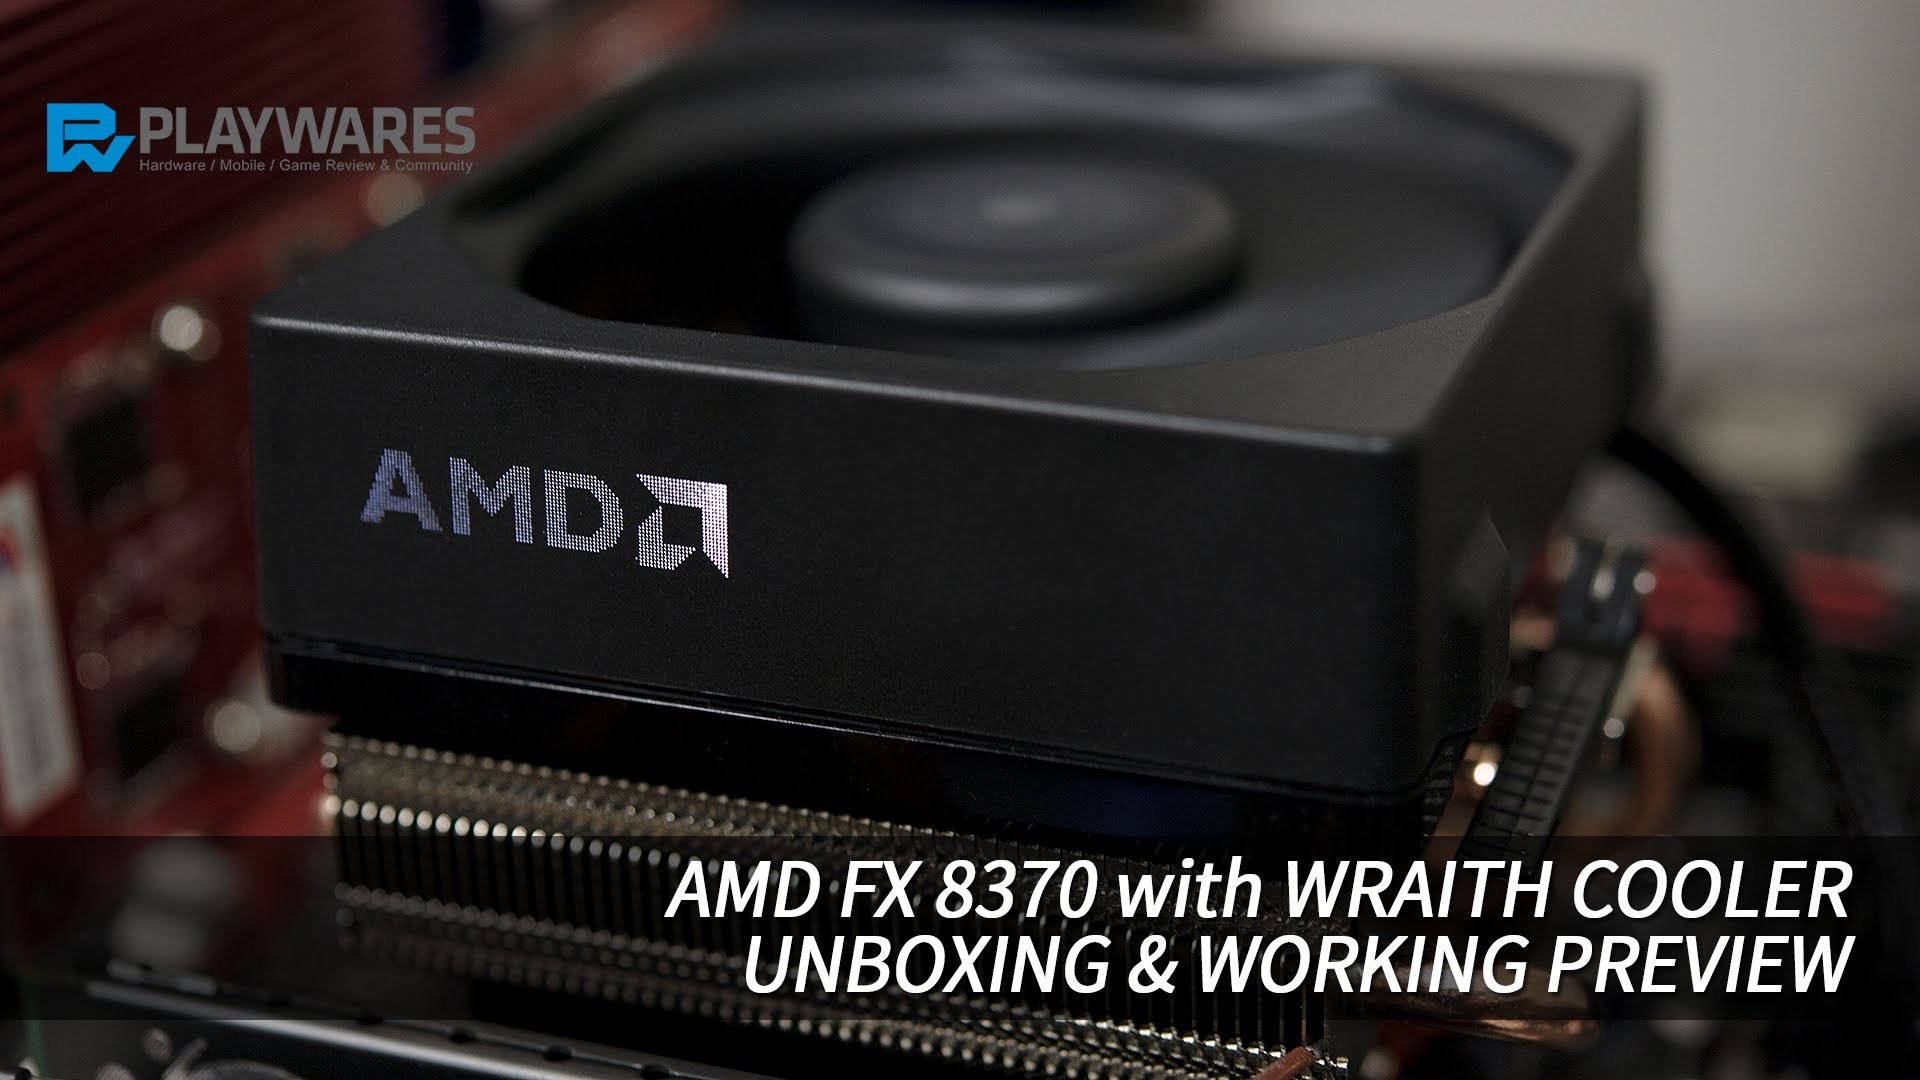 AMD FX 8370 with WRAITH COOLER UNBOXING & PREVIEW